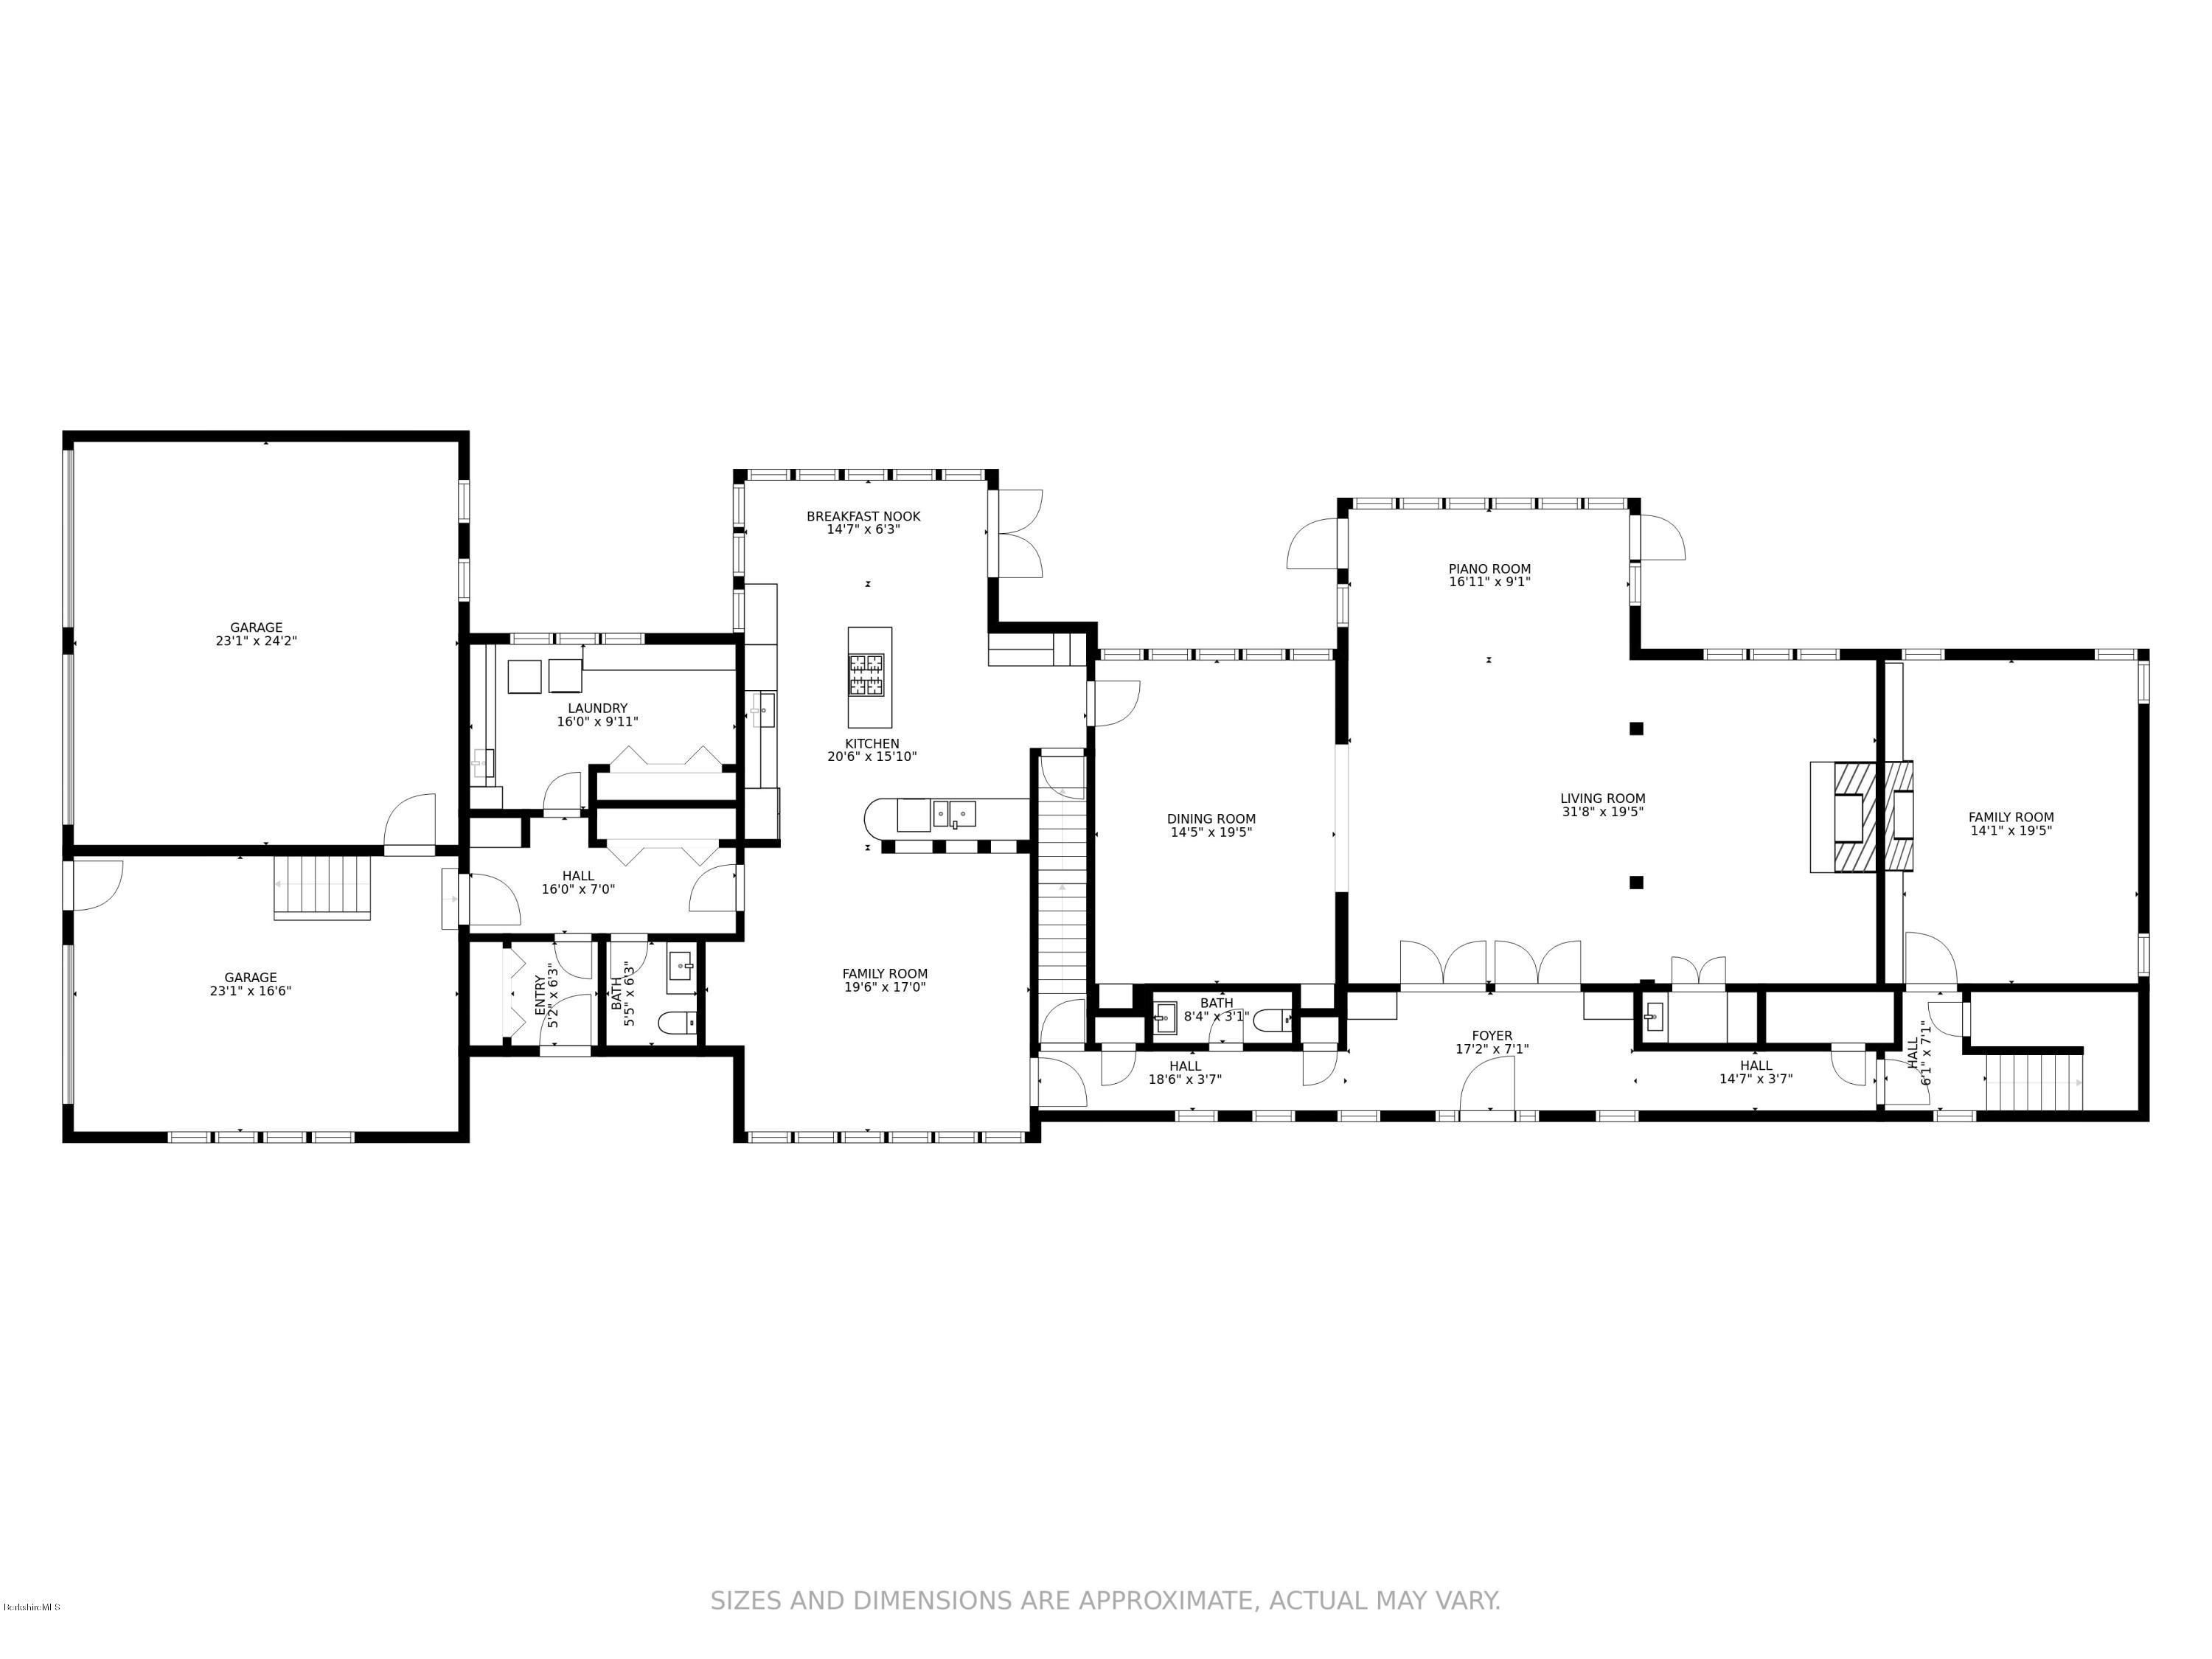 Property located at 425 Oblong Rd Williamstown MA 01267 photo